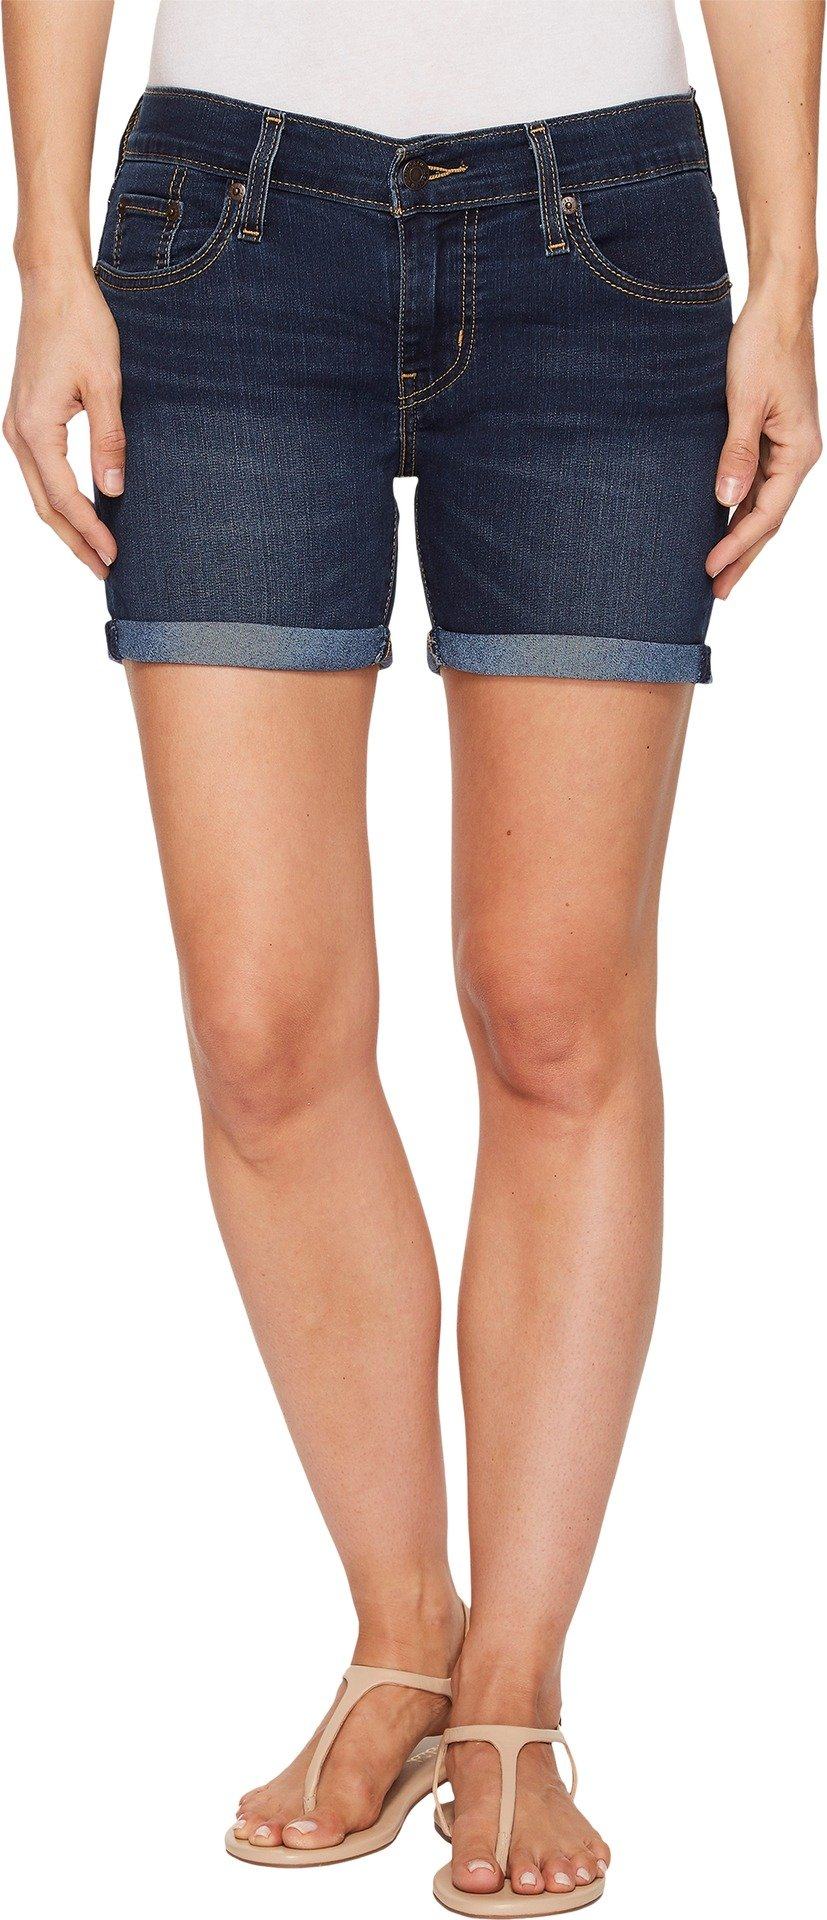 Levi's Women's Mid Length Shorts, Lost Blues 27 (US 4)